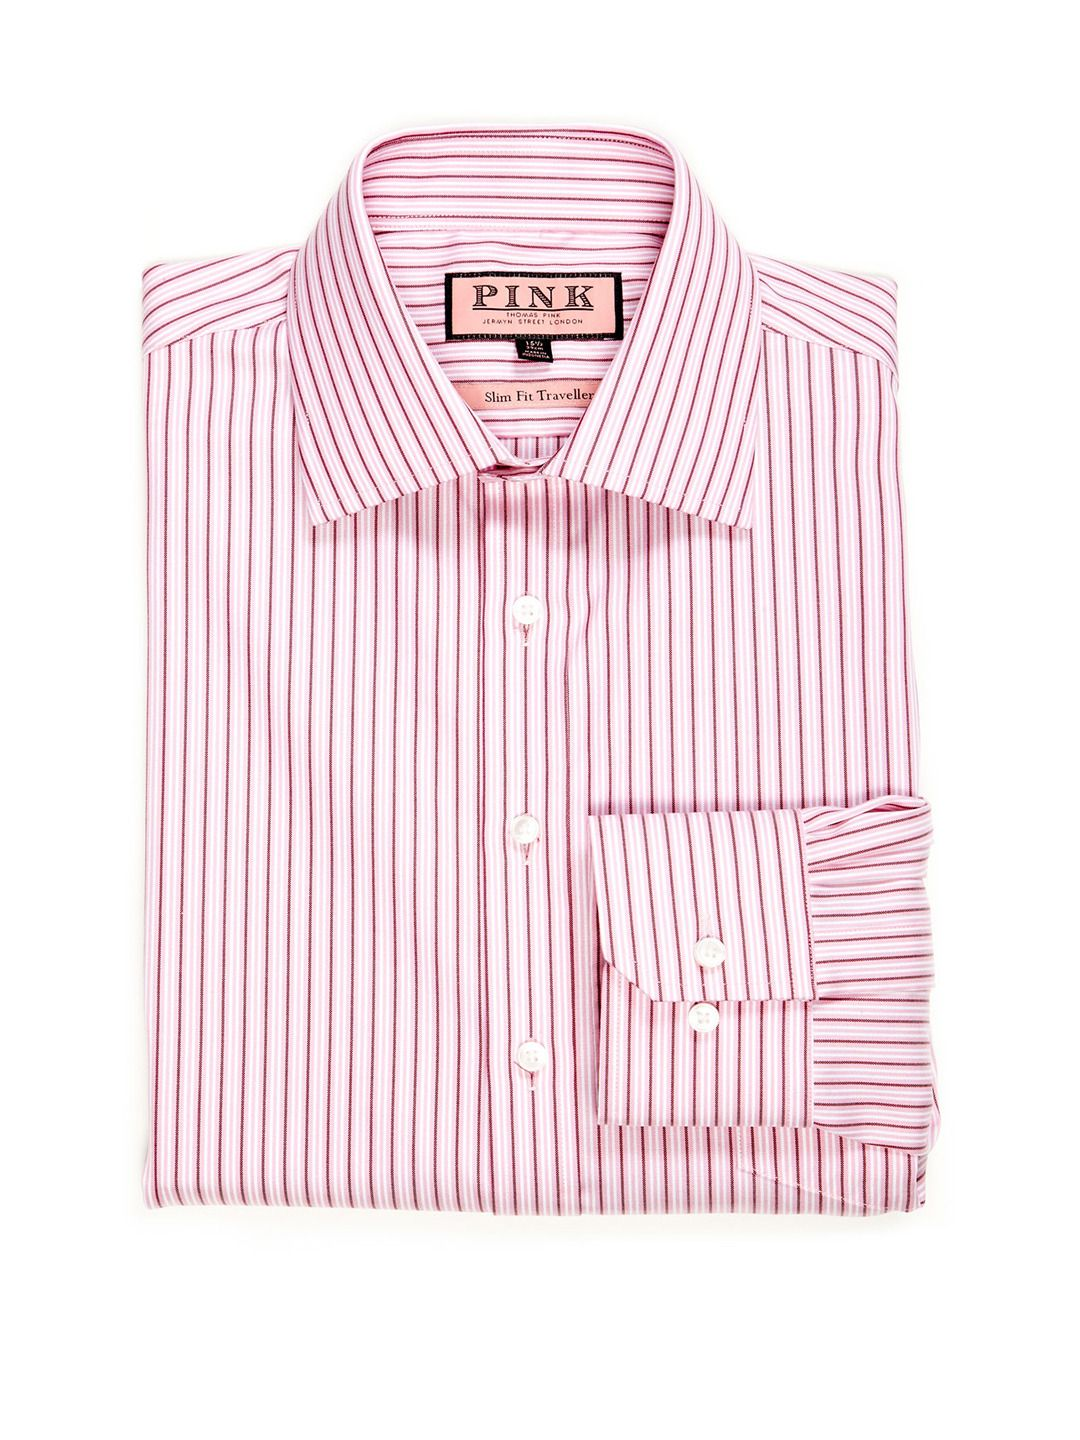 1cfe4588e468 Rhodes Slim Fit Traveller Stripe Dress Shirt by Thomas Pink at Gilt ...